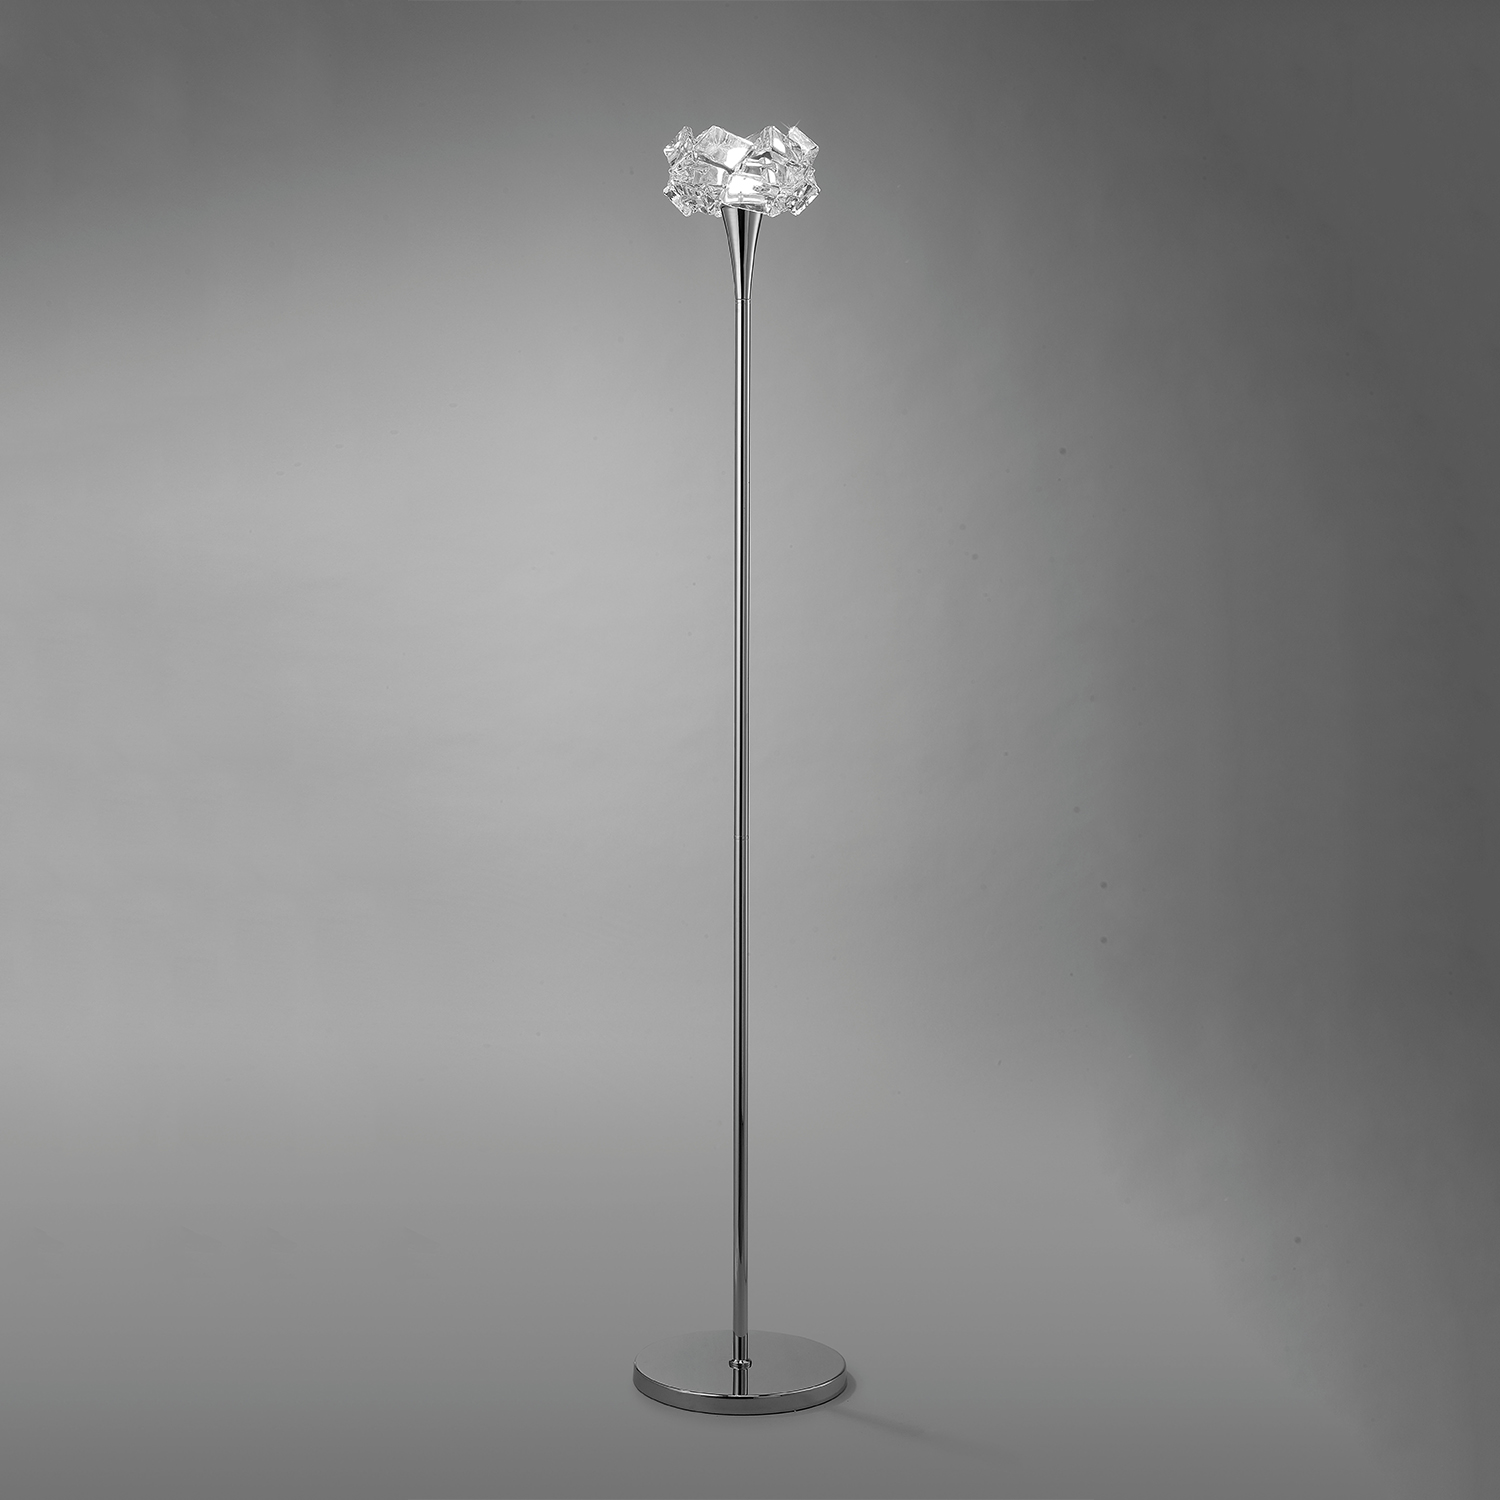 Artic Floor Lamp Salon 1L 1xE27 23w Chrome